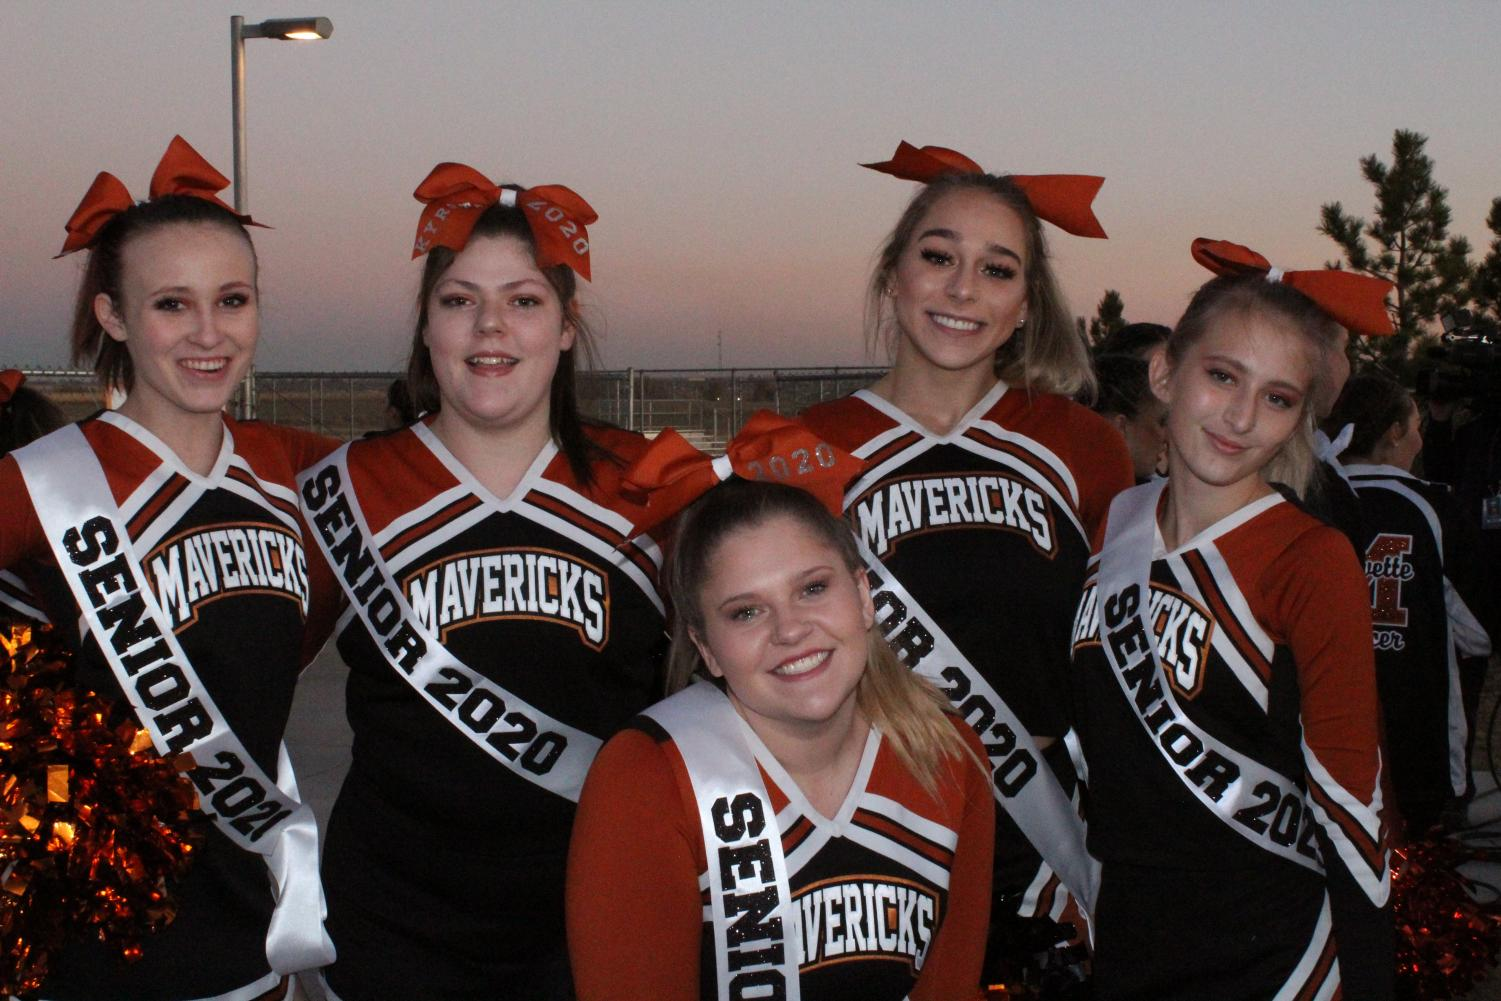 Senior+cheerleaders+pose+for+pregame+picture.